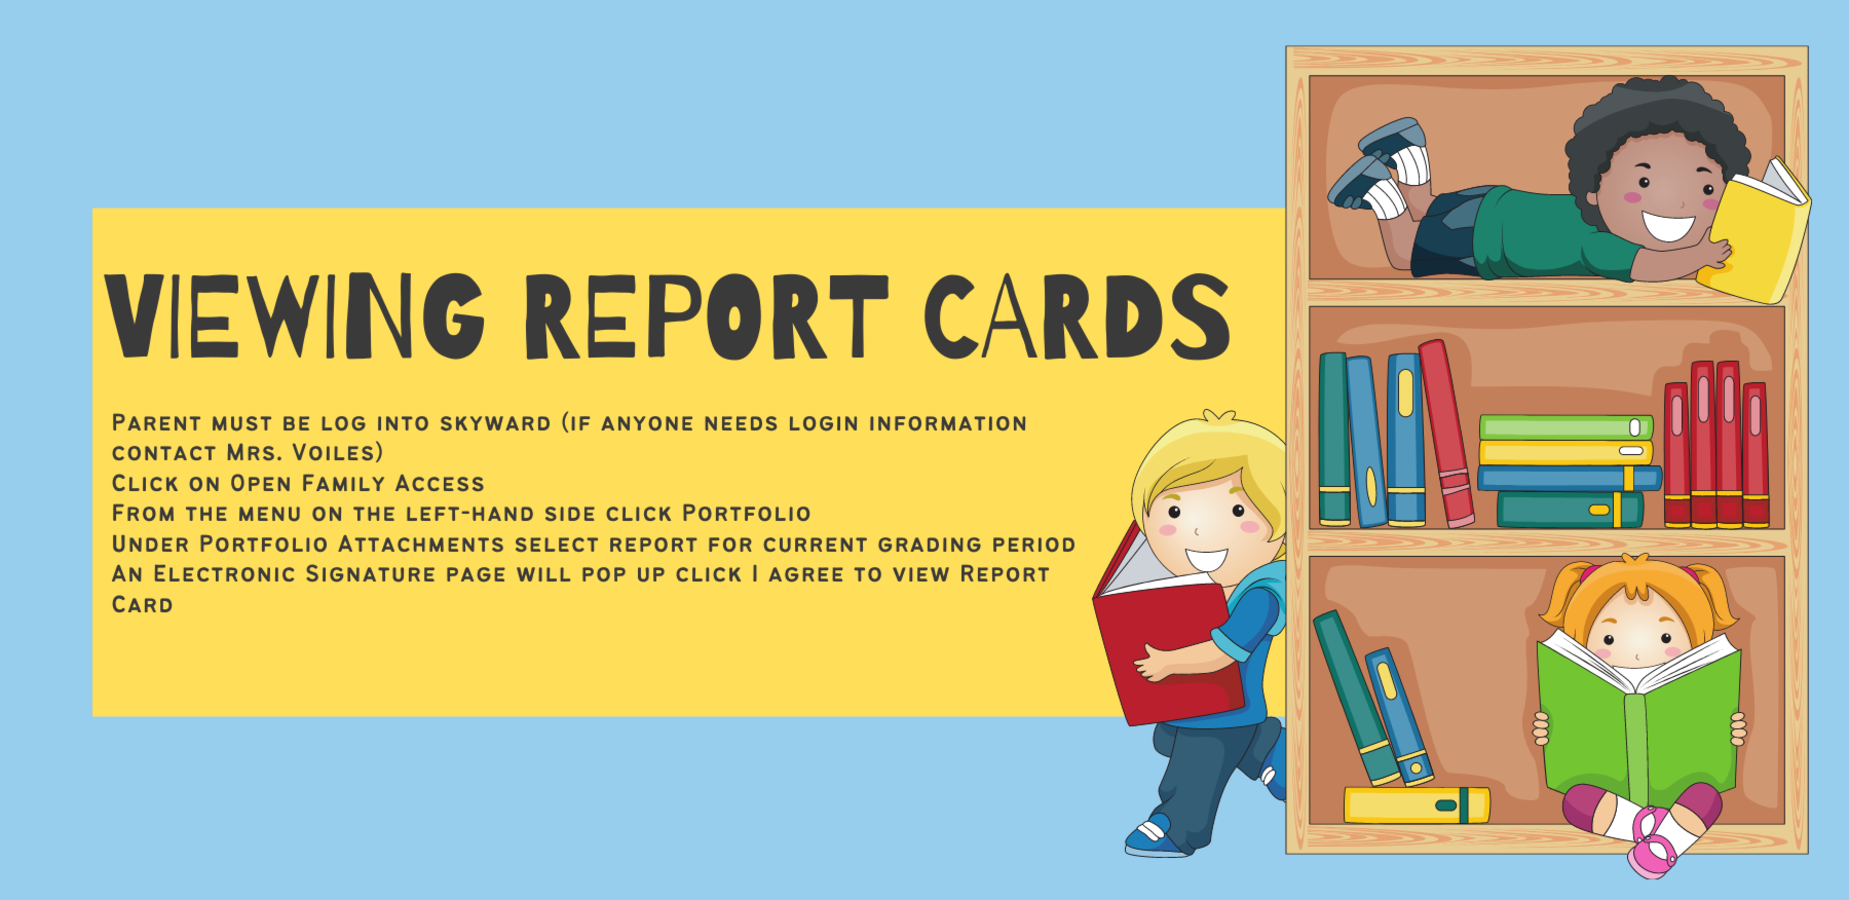 Directions to View Report cards